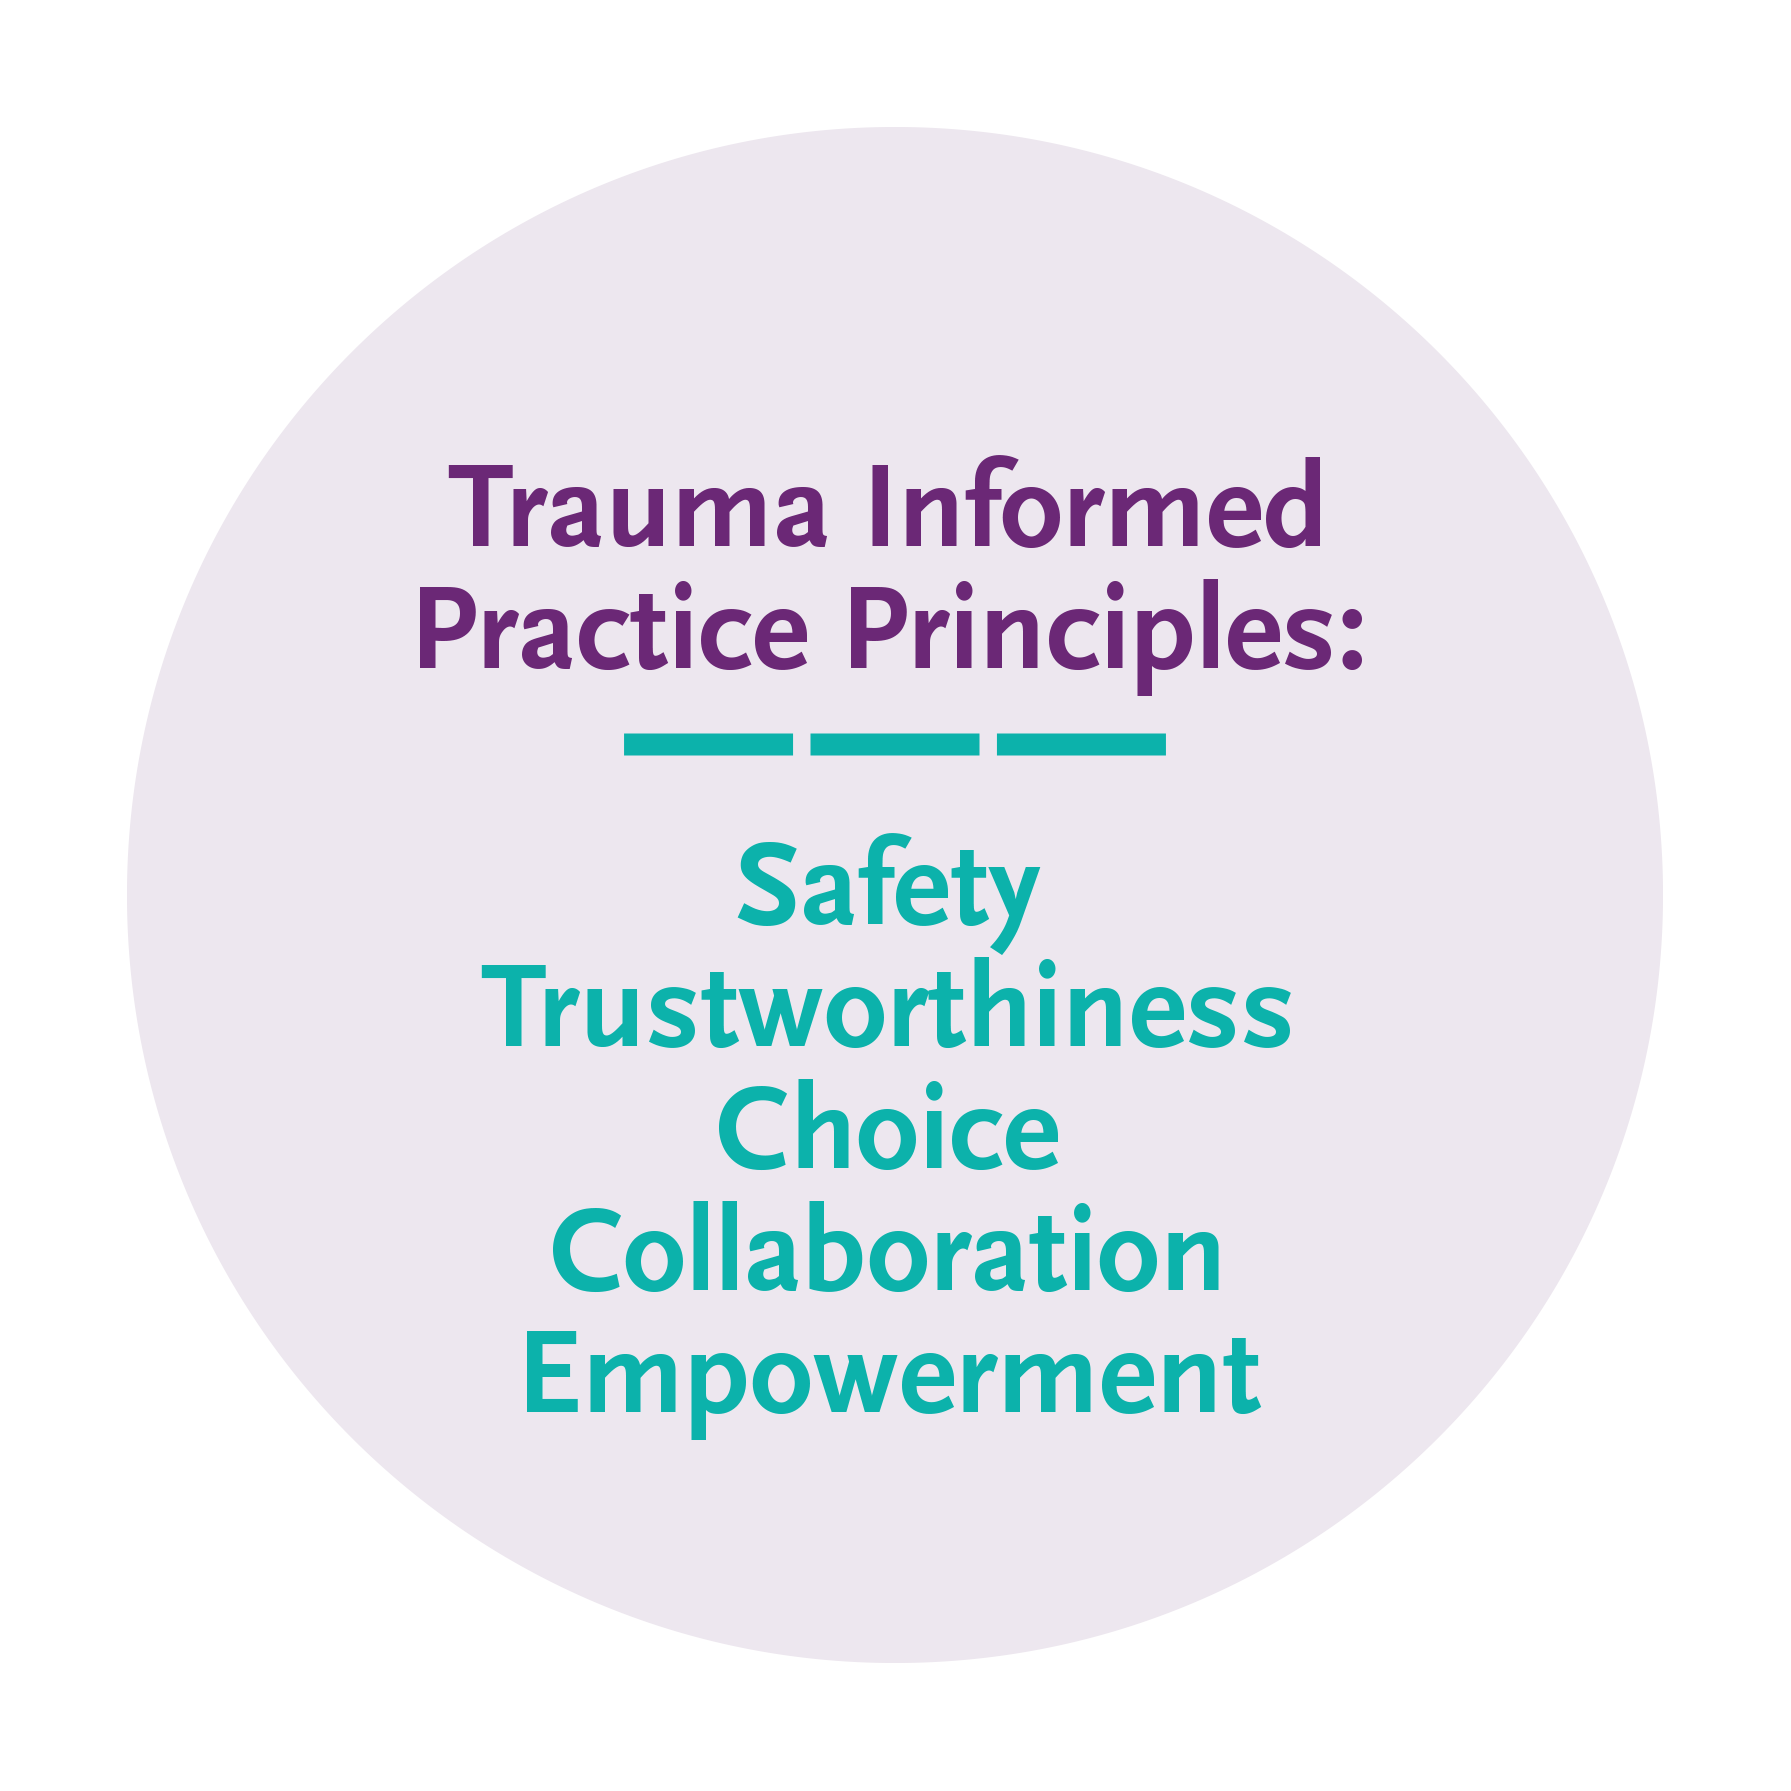 Trauma informed care principals